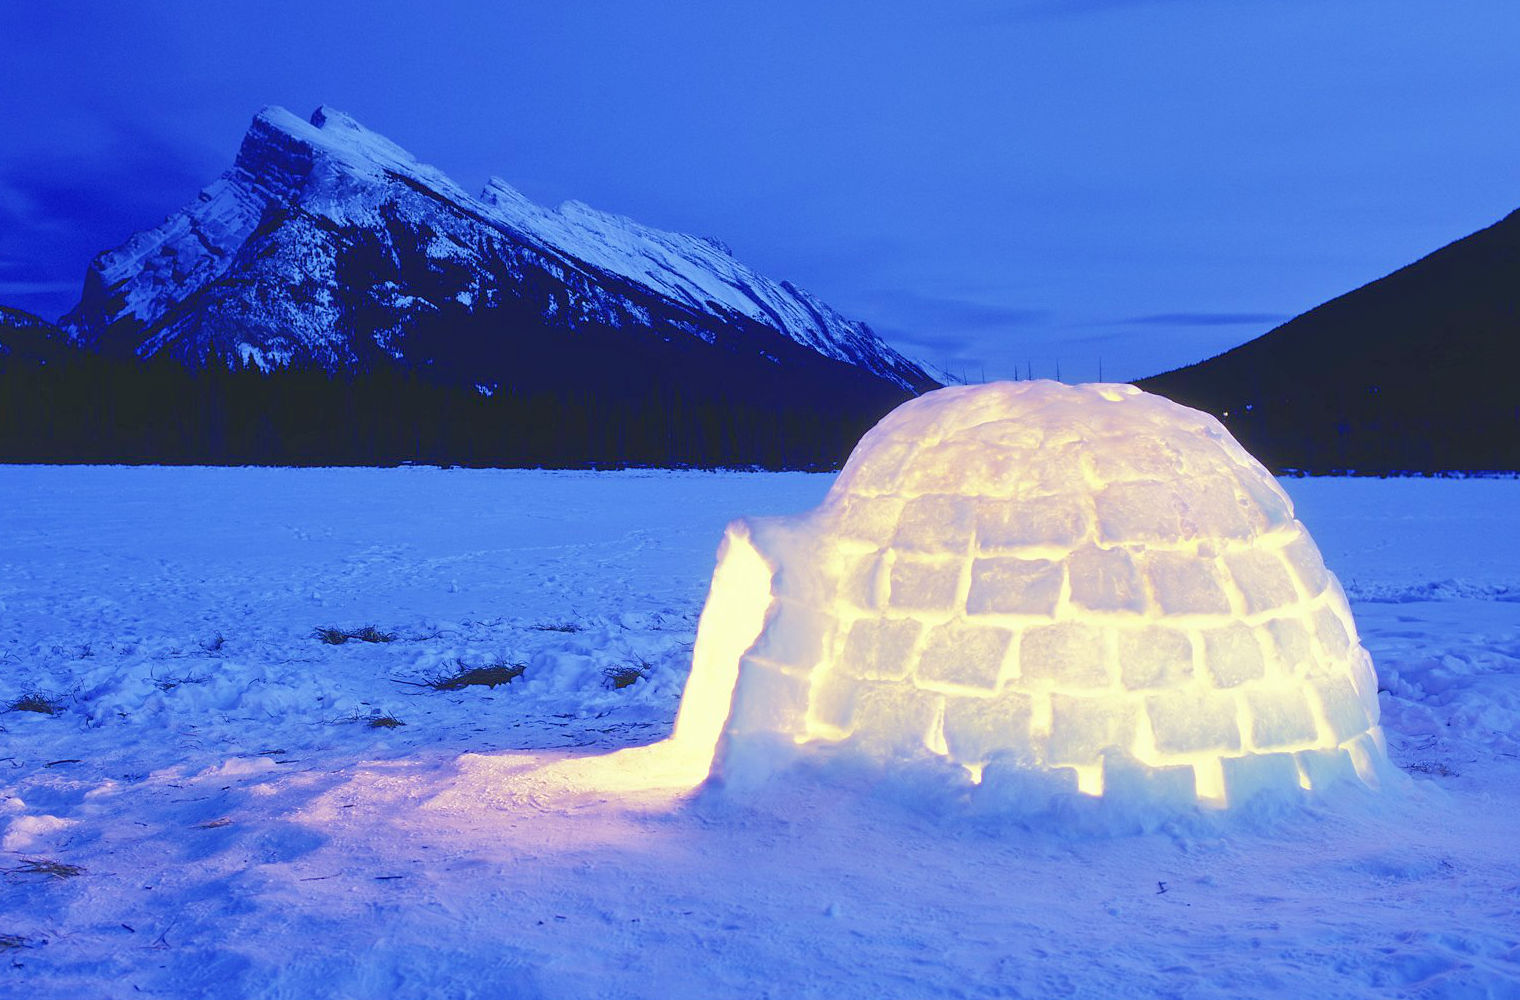 Igloo in Winter Wonderland